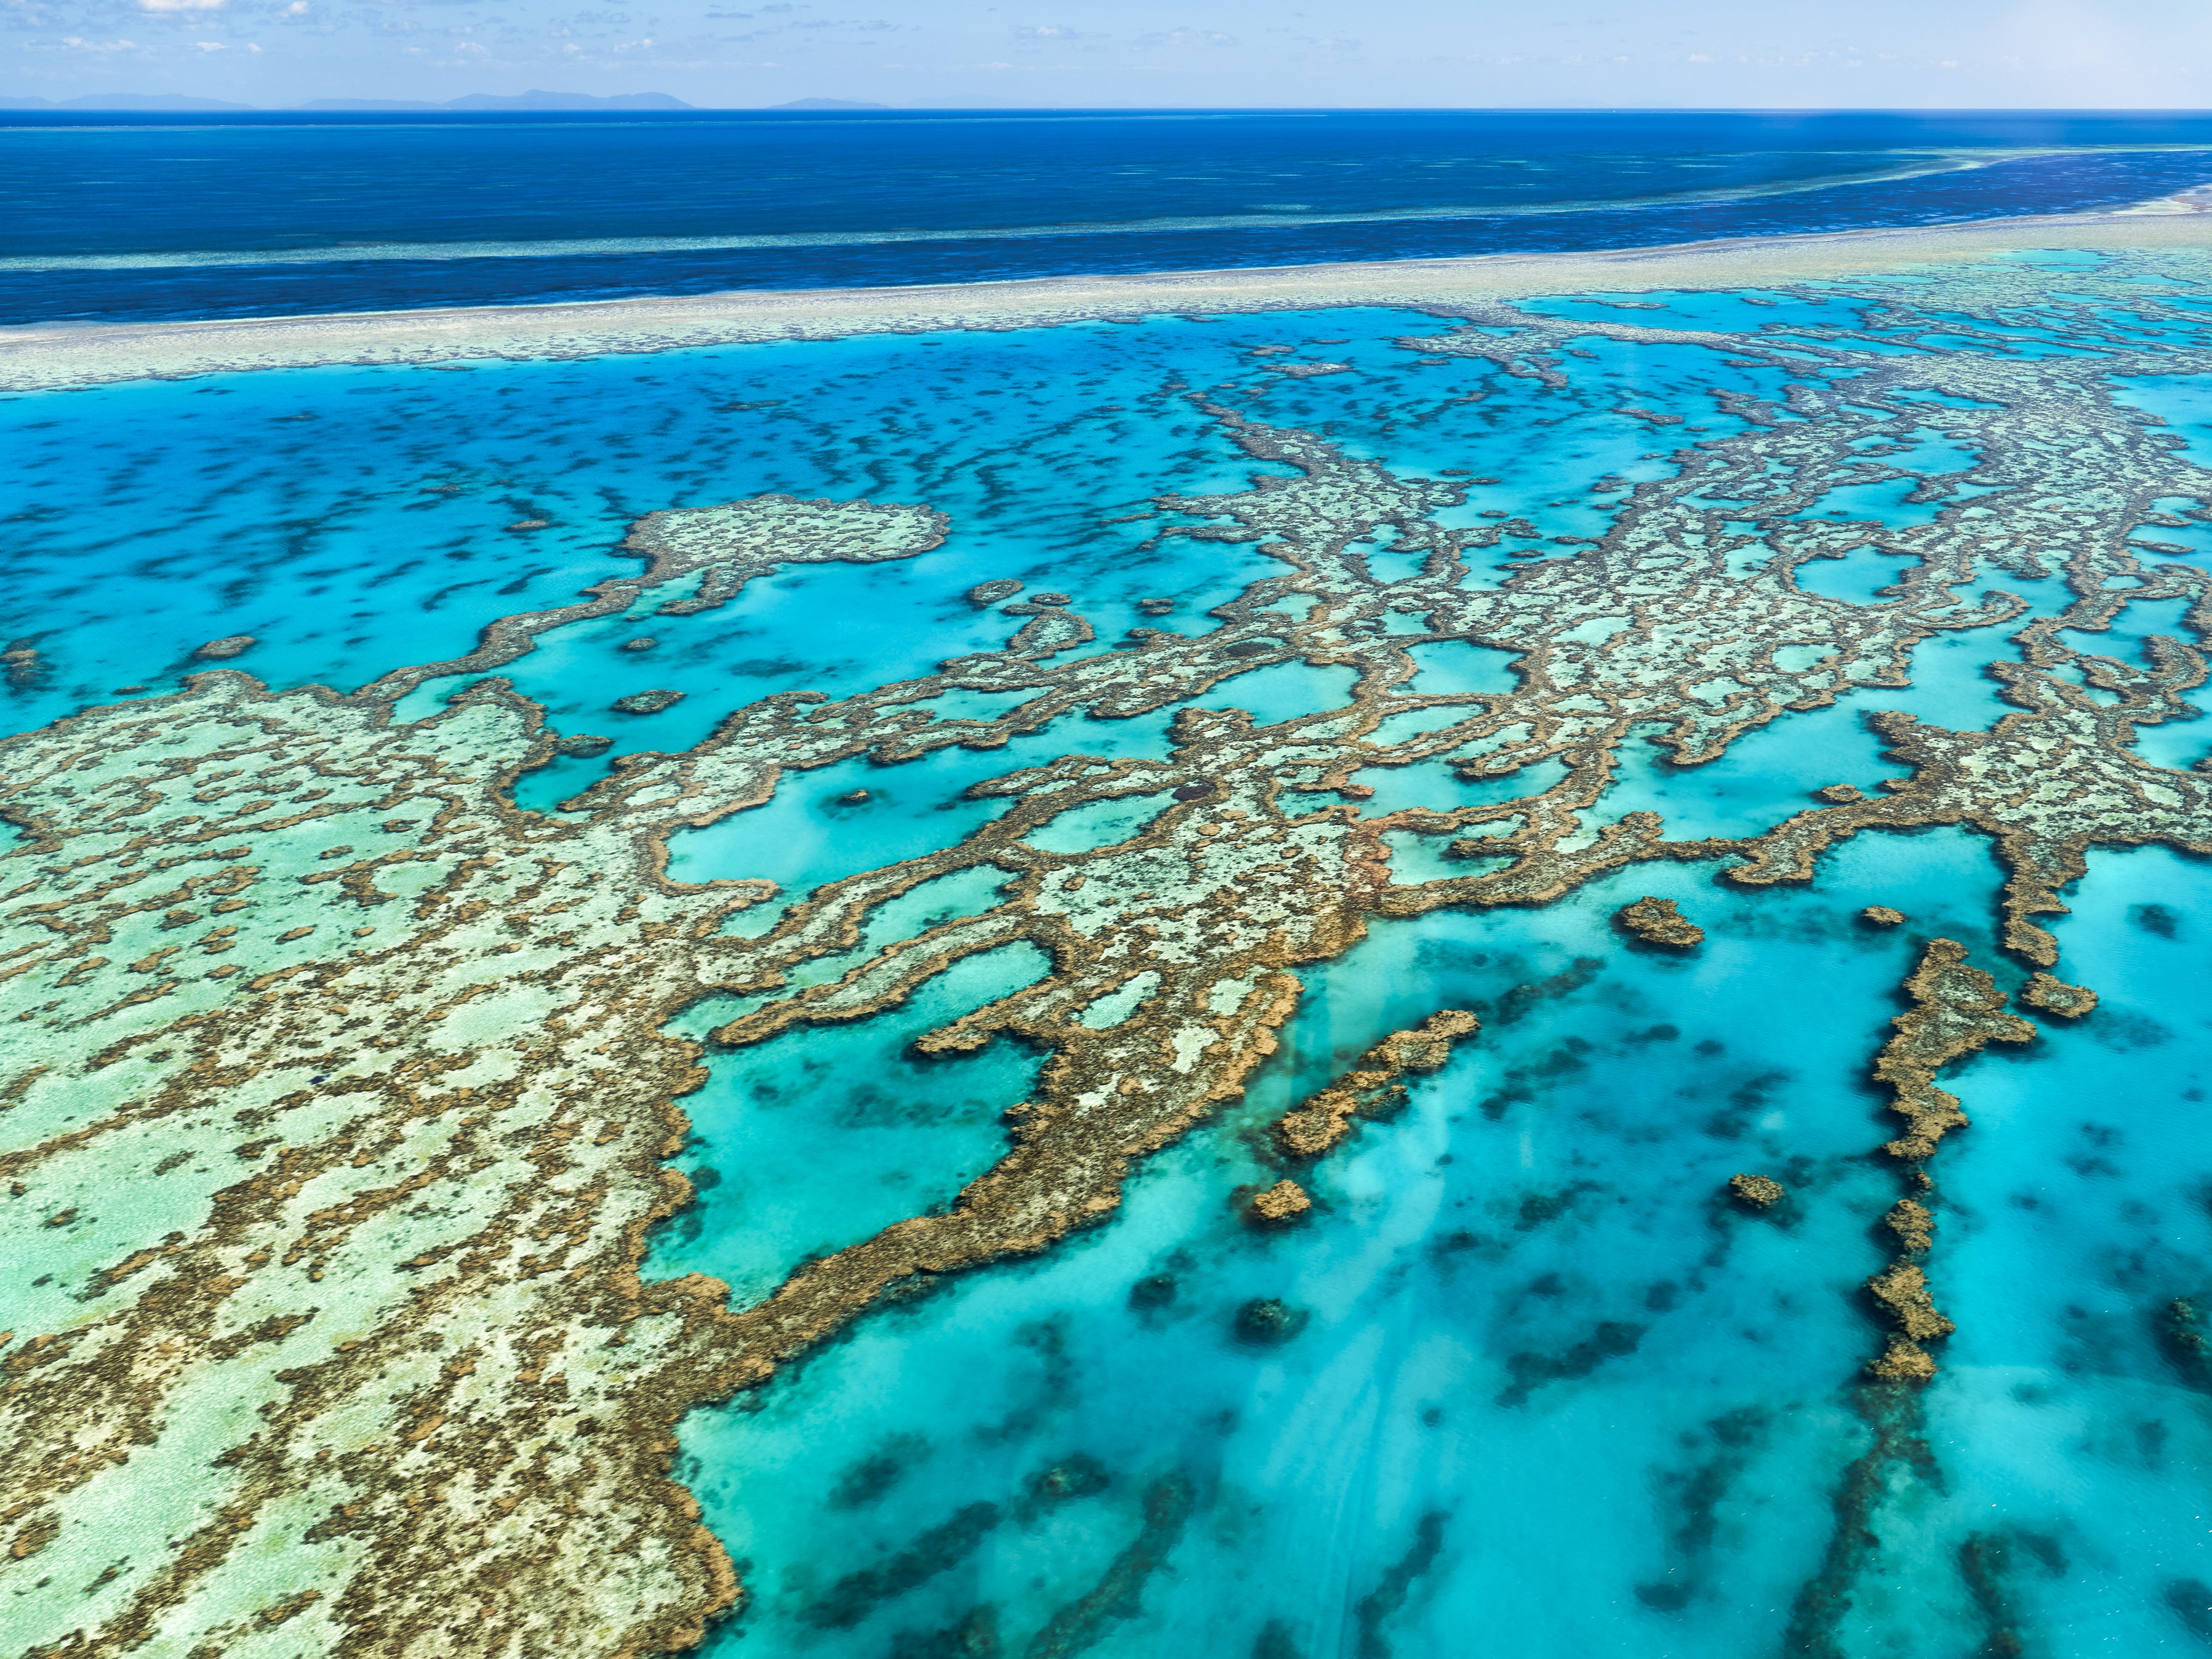 Updates to Queensland's Reef Protection Regulations: What your industry needs to know